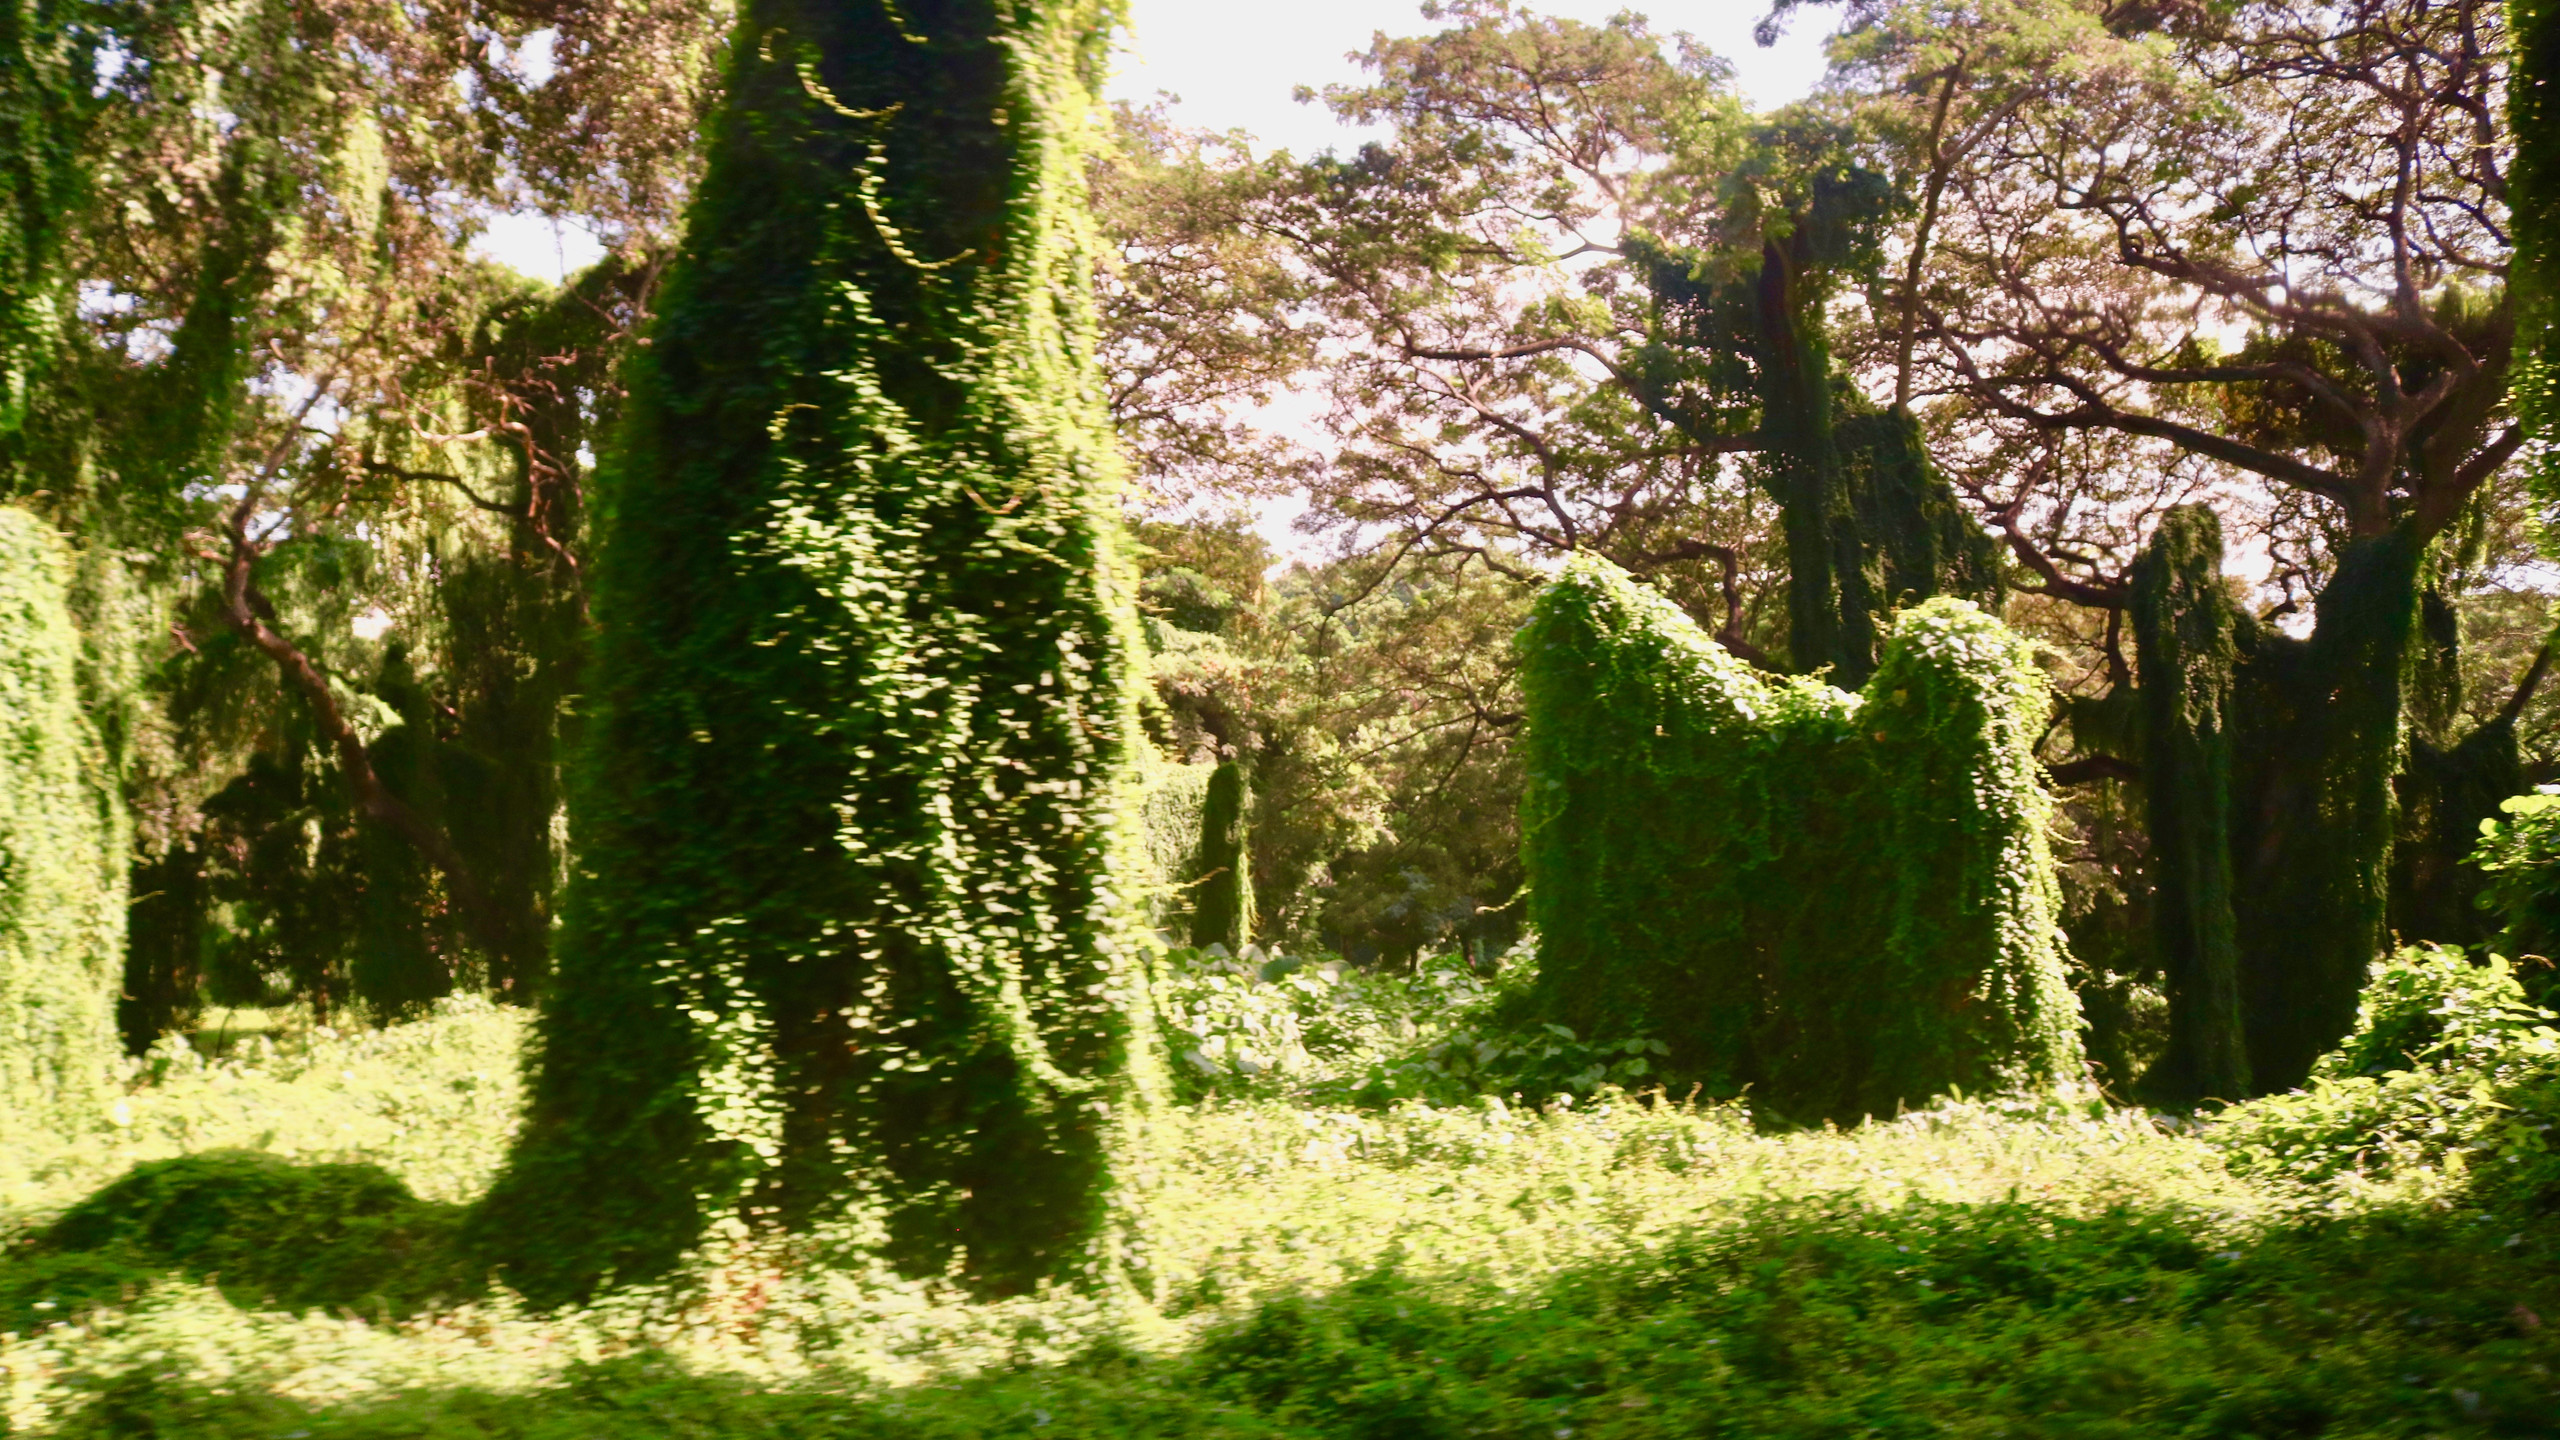 Vine-covered trees and shrubs in Havana Forest.